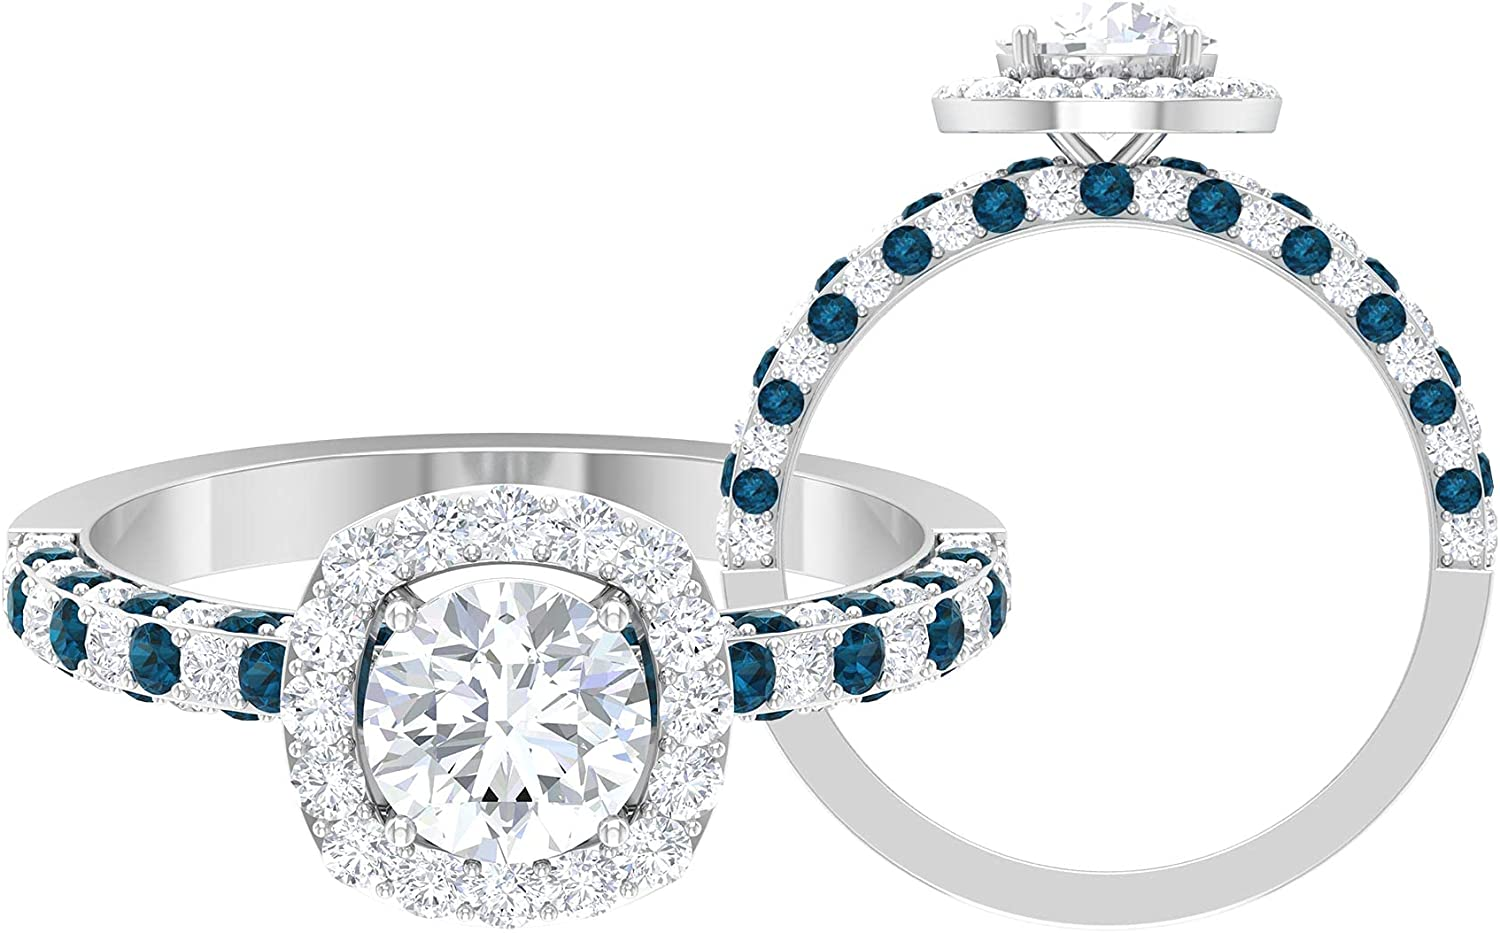 1.75 CT Solitaire Moissanite and London Blue Topaz Side Stone Engagement Ring (D-VSSI Quality),14K White Gold,London Blue Topaz,Size:US 9.00